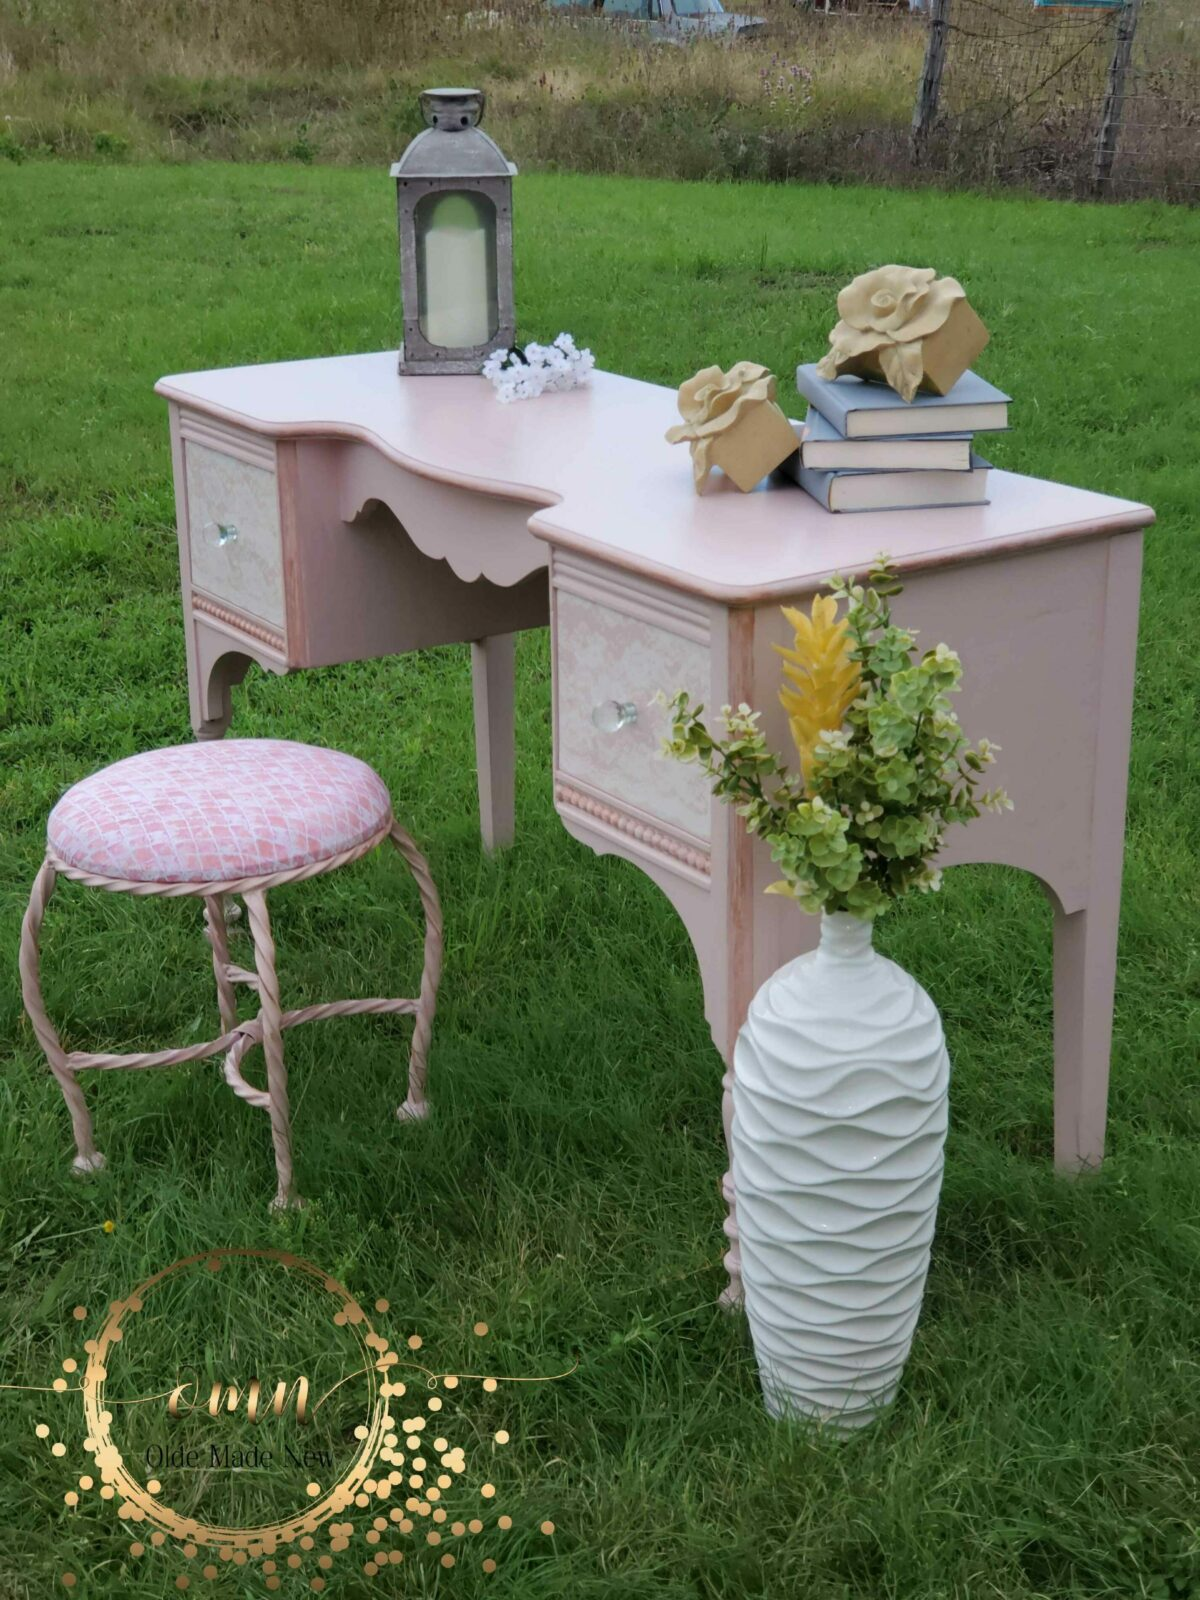 Links to Fabulous Furniture Makeover Posts